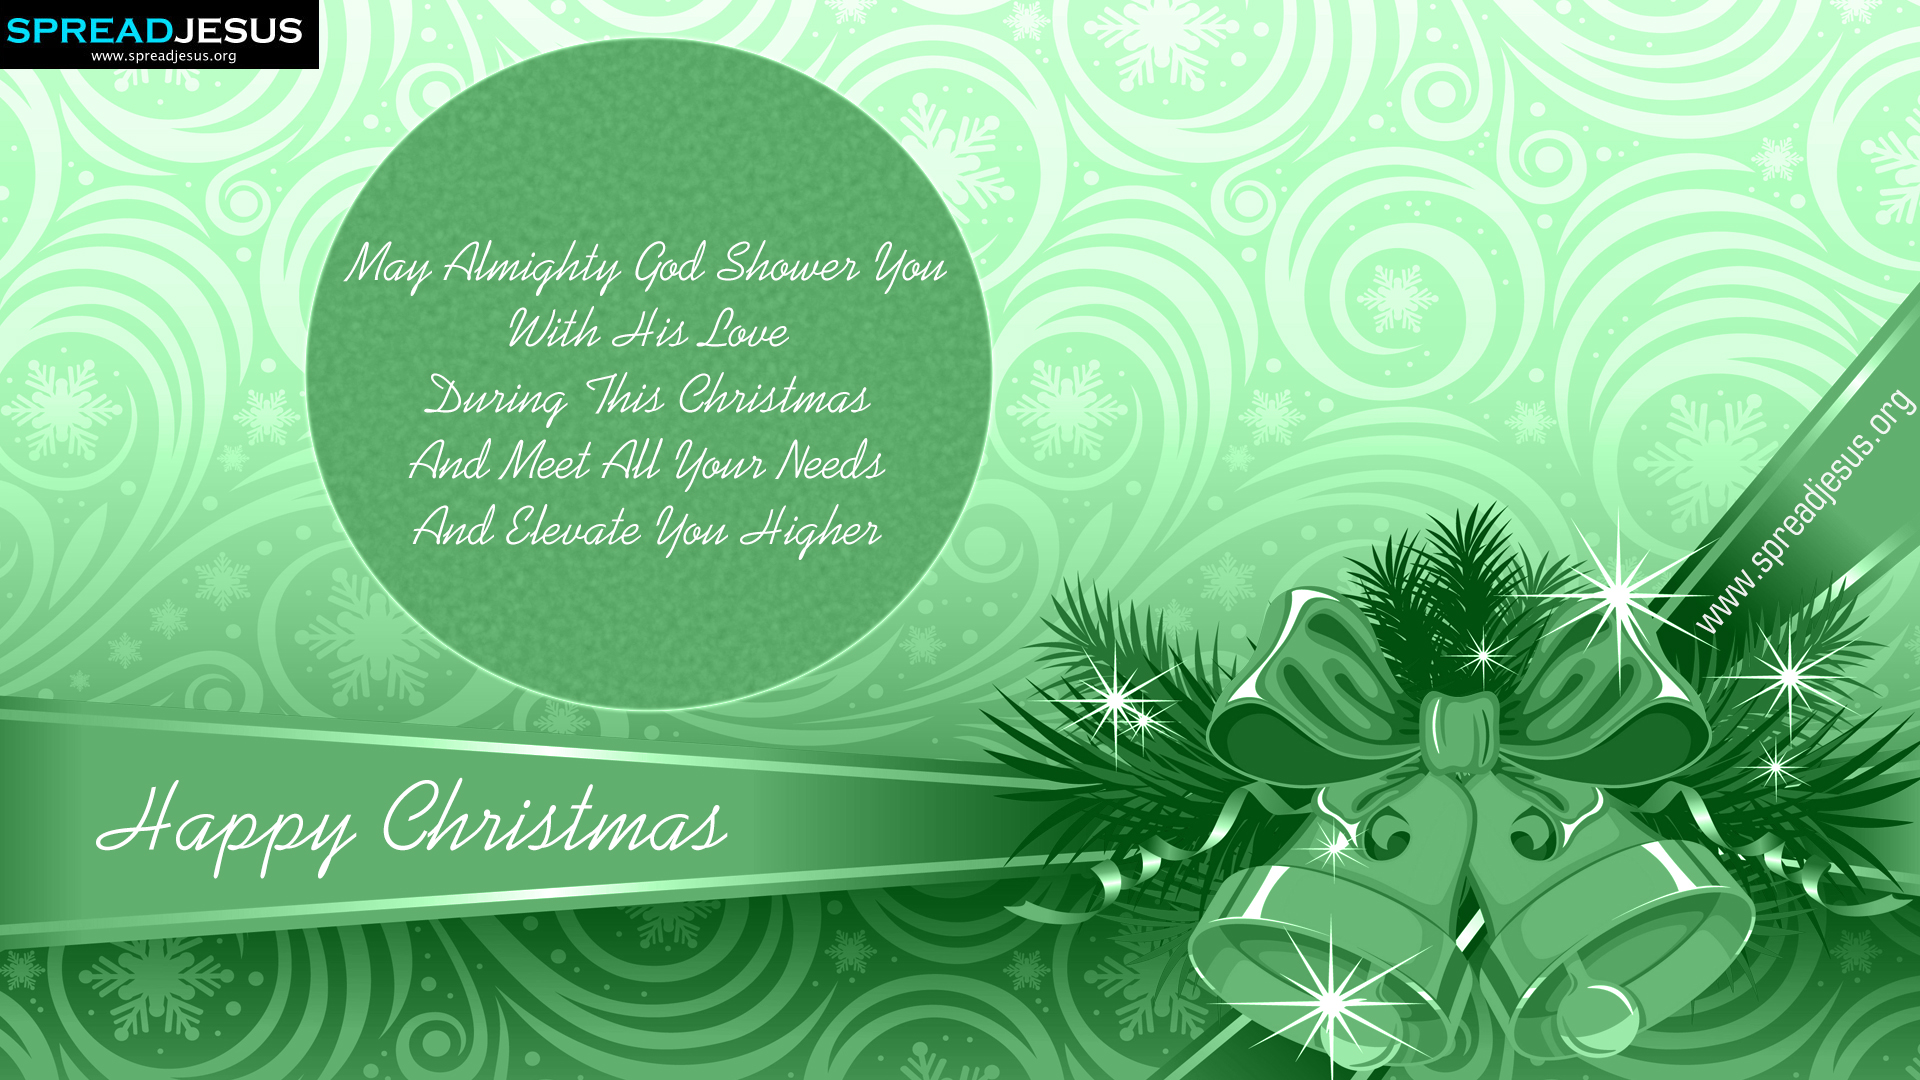 HAPPY CHRISTMAS QUOTES HD WALLPAPERS DOWNLOAD-Happy Christmas Hd Wallpapers Free Download